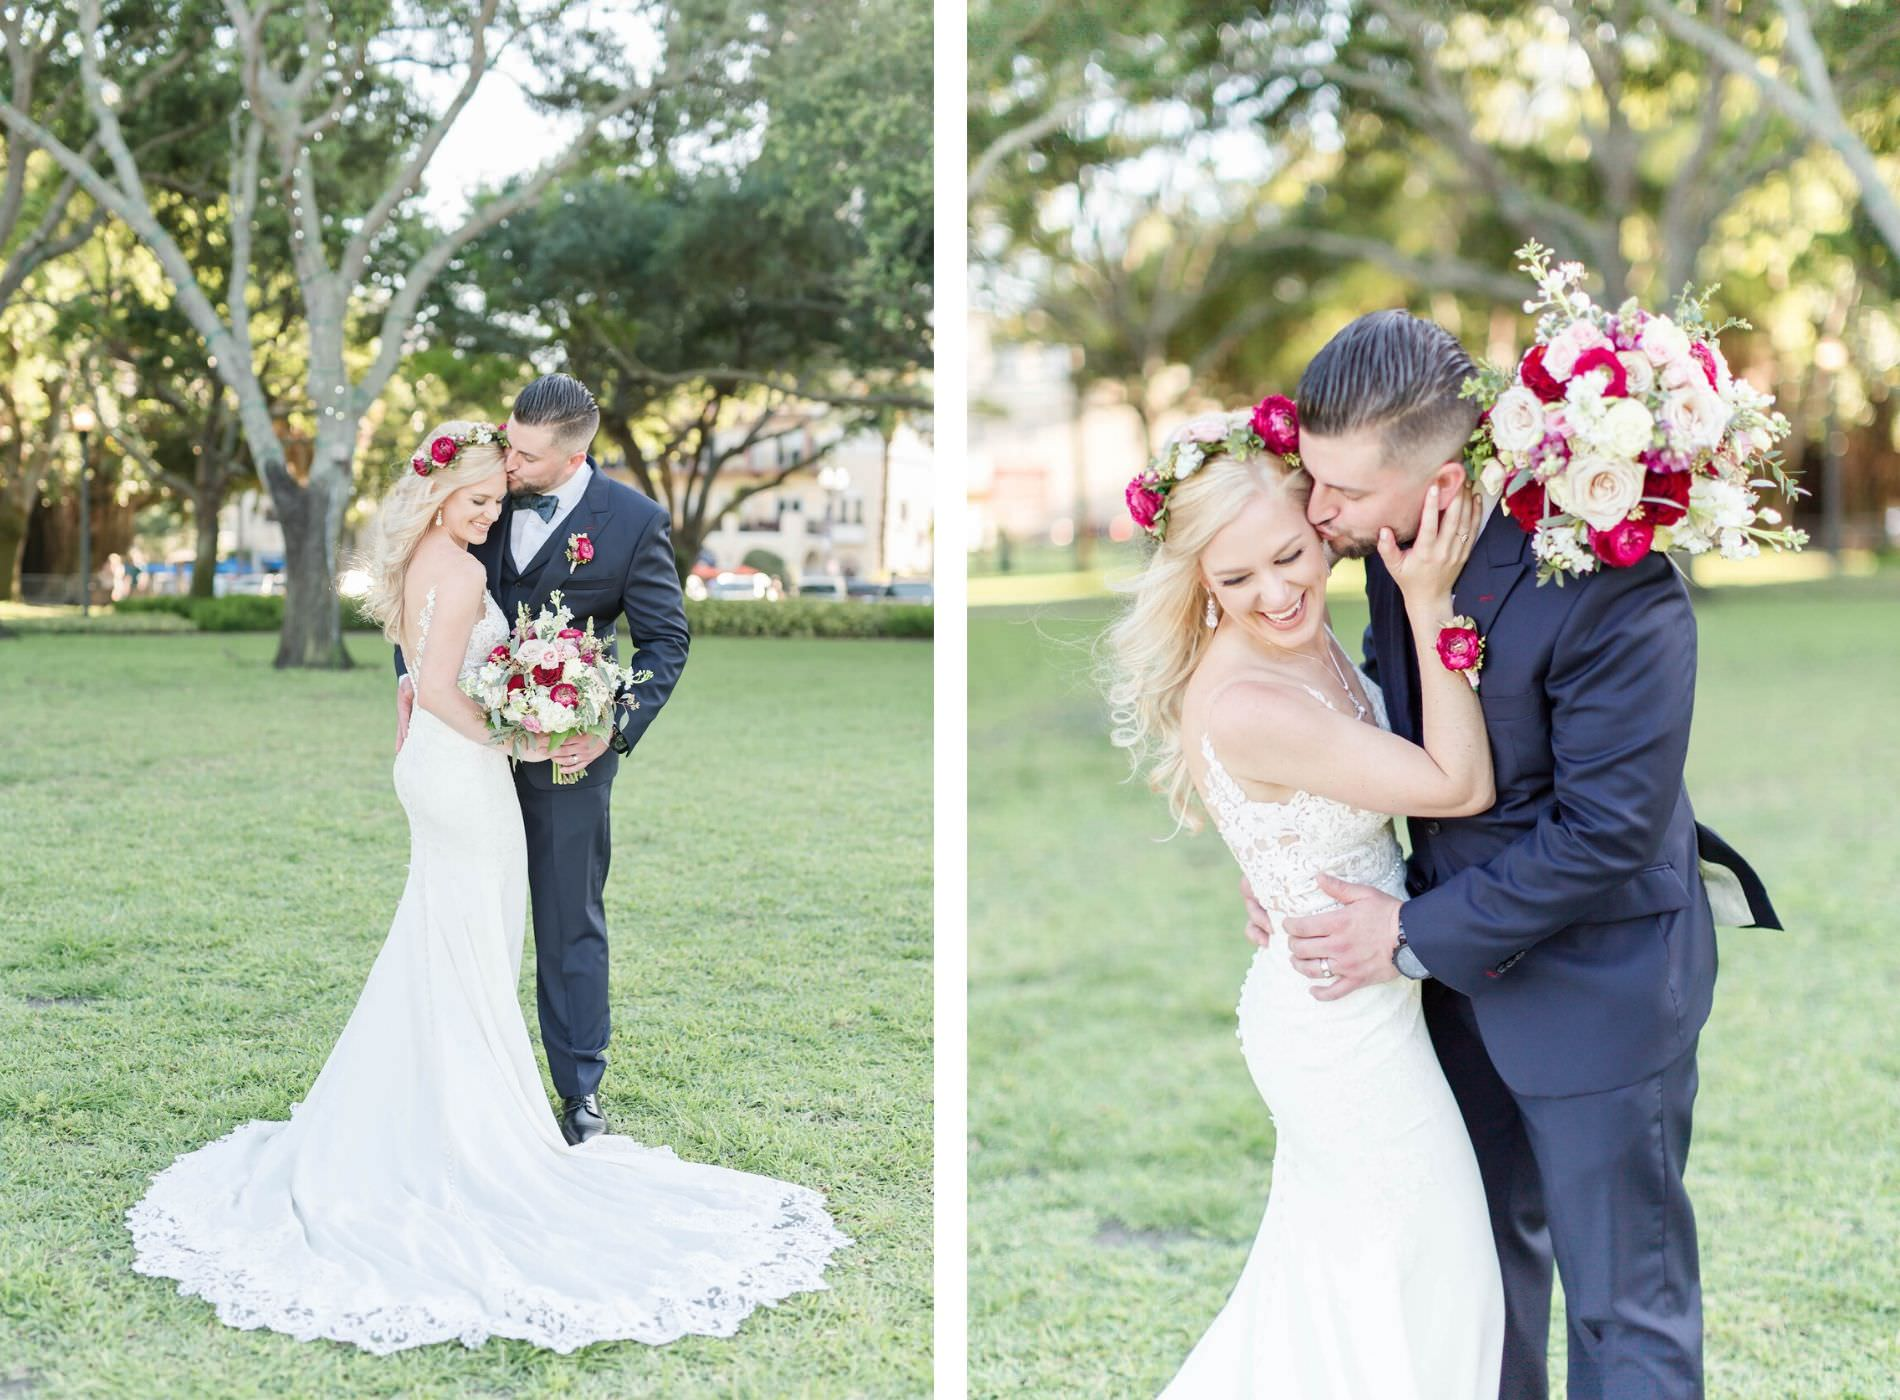 St. Pete Wedding Bridal and Groom Portrait   Stella York Lace Sheath Spaghetti Strap Empire Waist Wedding Dress Bridal Gown   Bride Wedding Bouquet and Halo Crown with Blush Pink Dusty and Burgundy Rose Garden Roses, Snapdragons, Stock, and Eucalyptus Greenery   Groom Classic Black Suit Tux